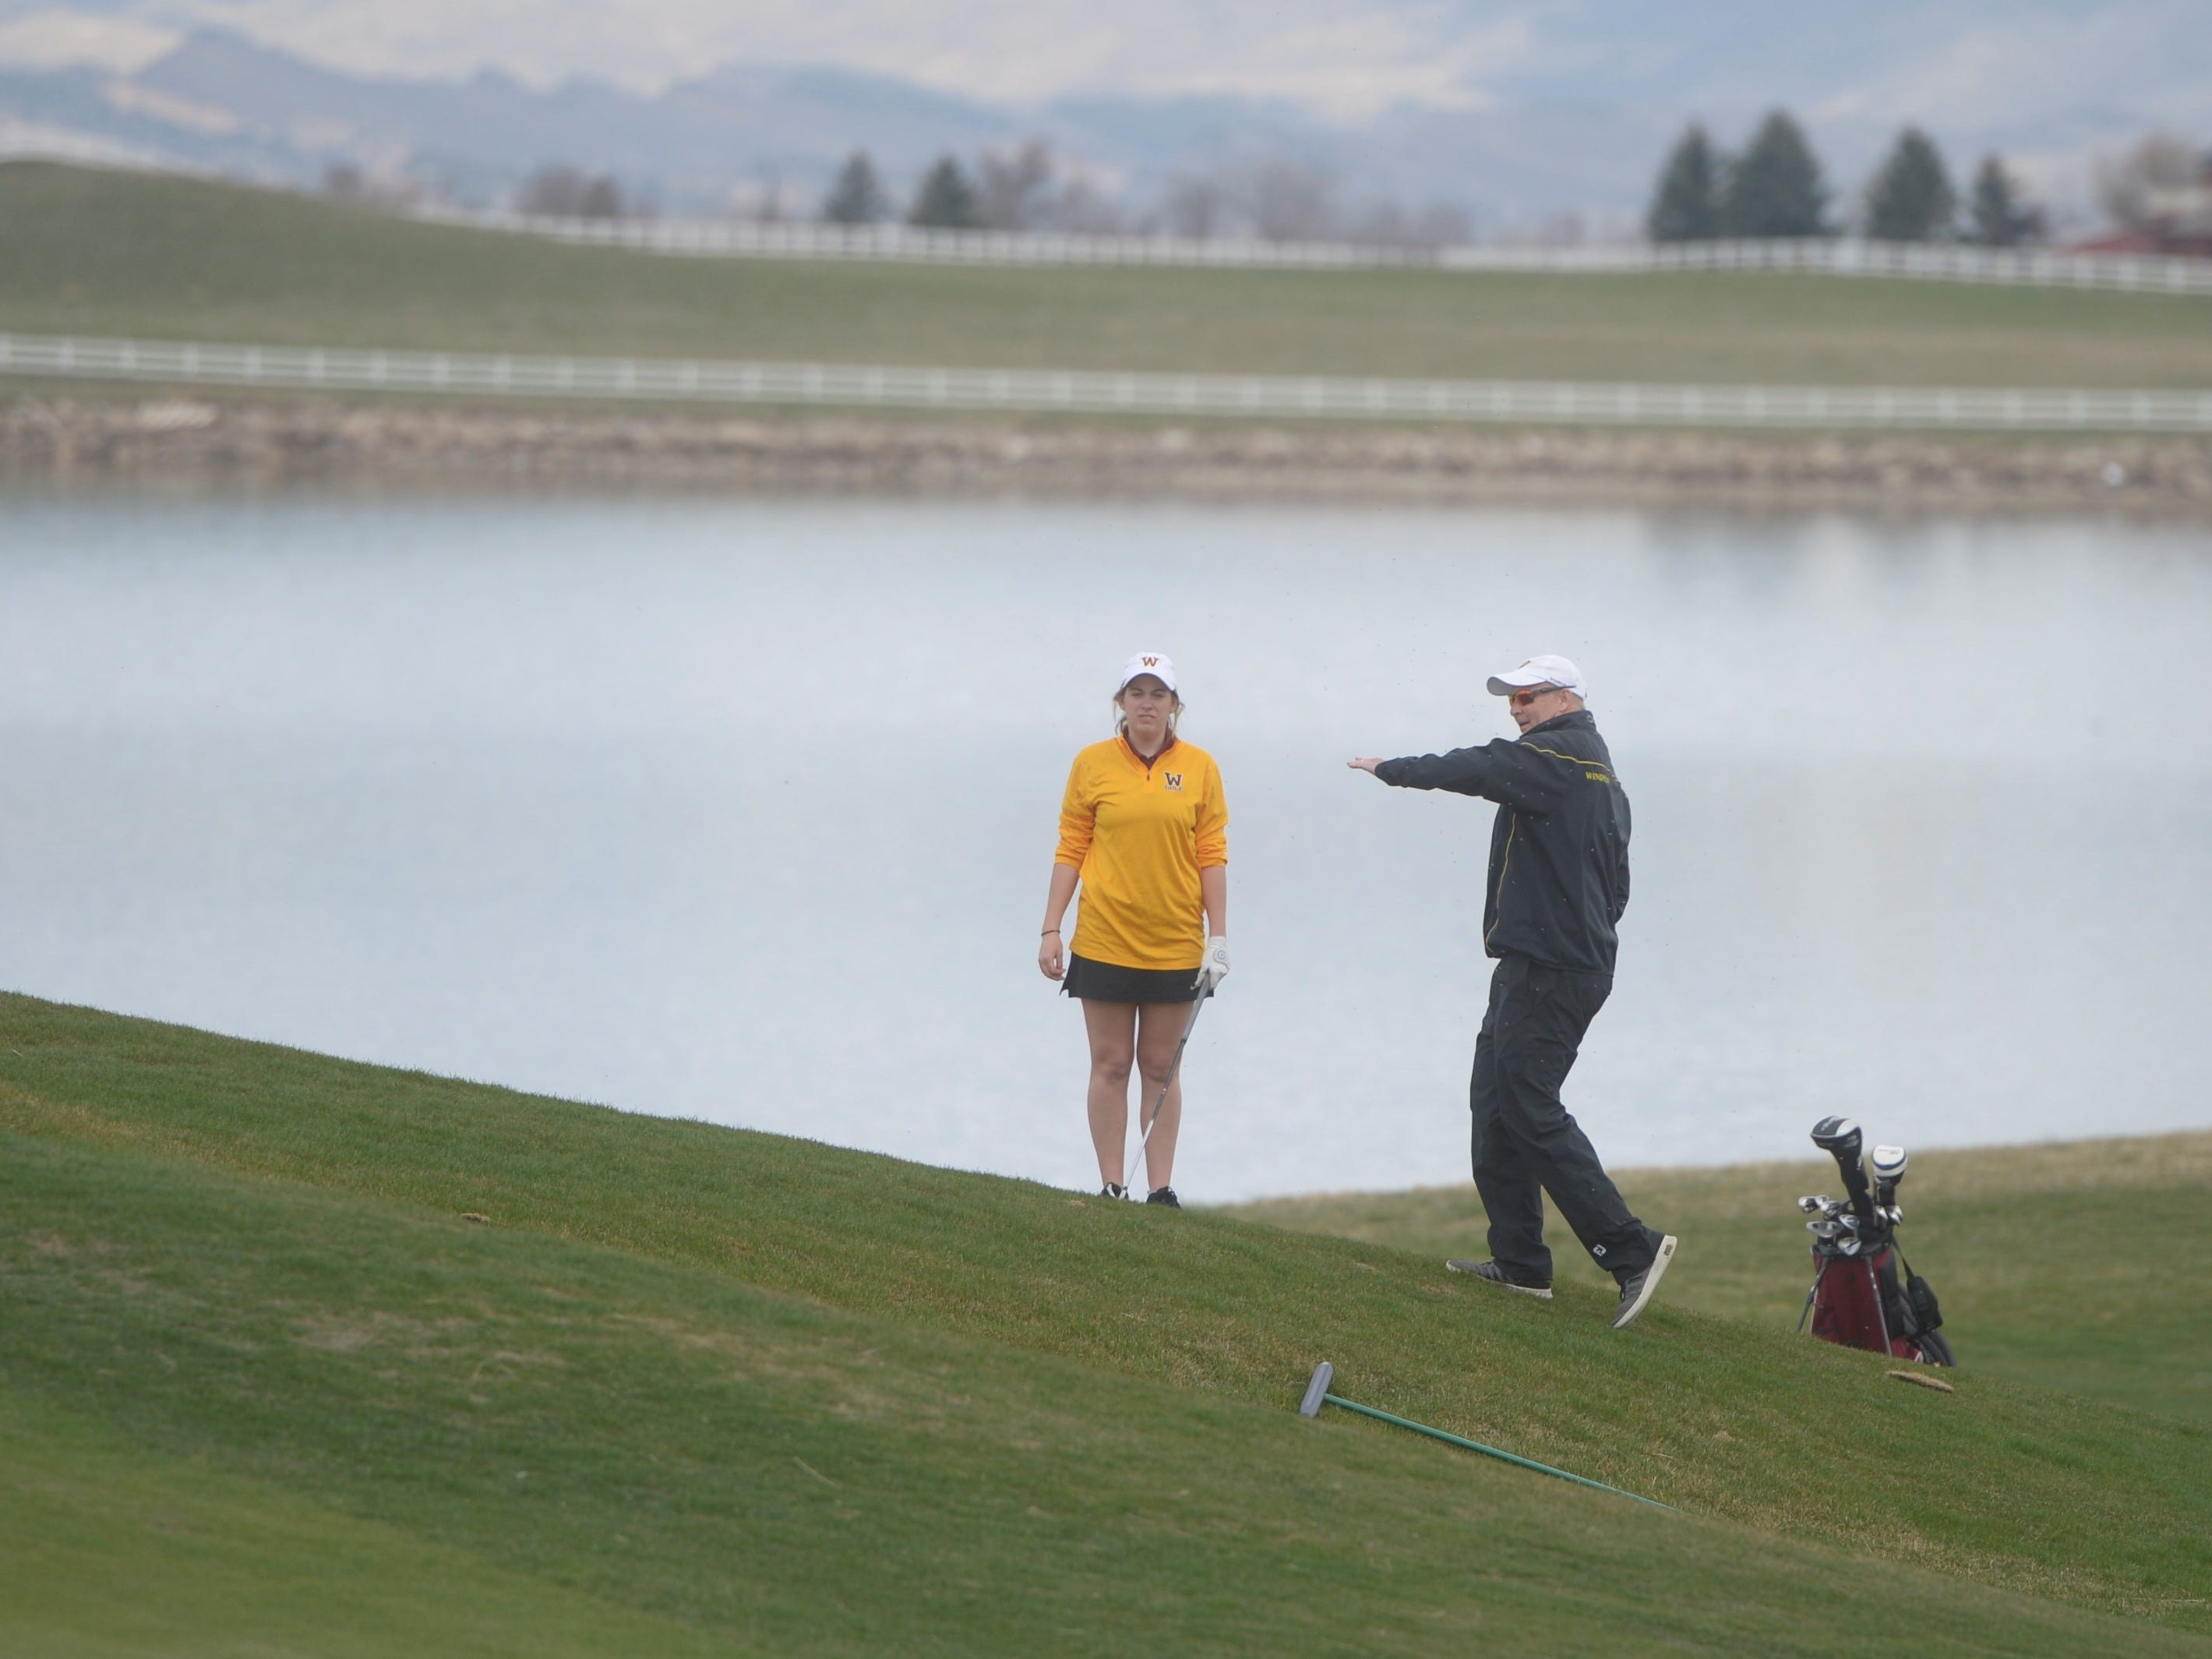 Windsor golfer Anna Nacy, left, talks with coach Kenny Anderson at the Tri-Valley League match at TPC Colorado in Berthoud on Monday, April 15. Windsor won the event. It's the first Tournament Players Club course in the state.